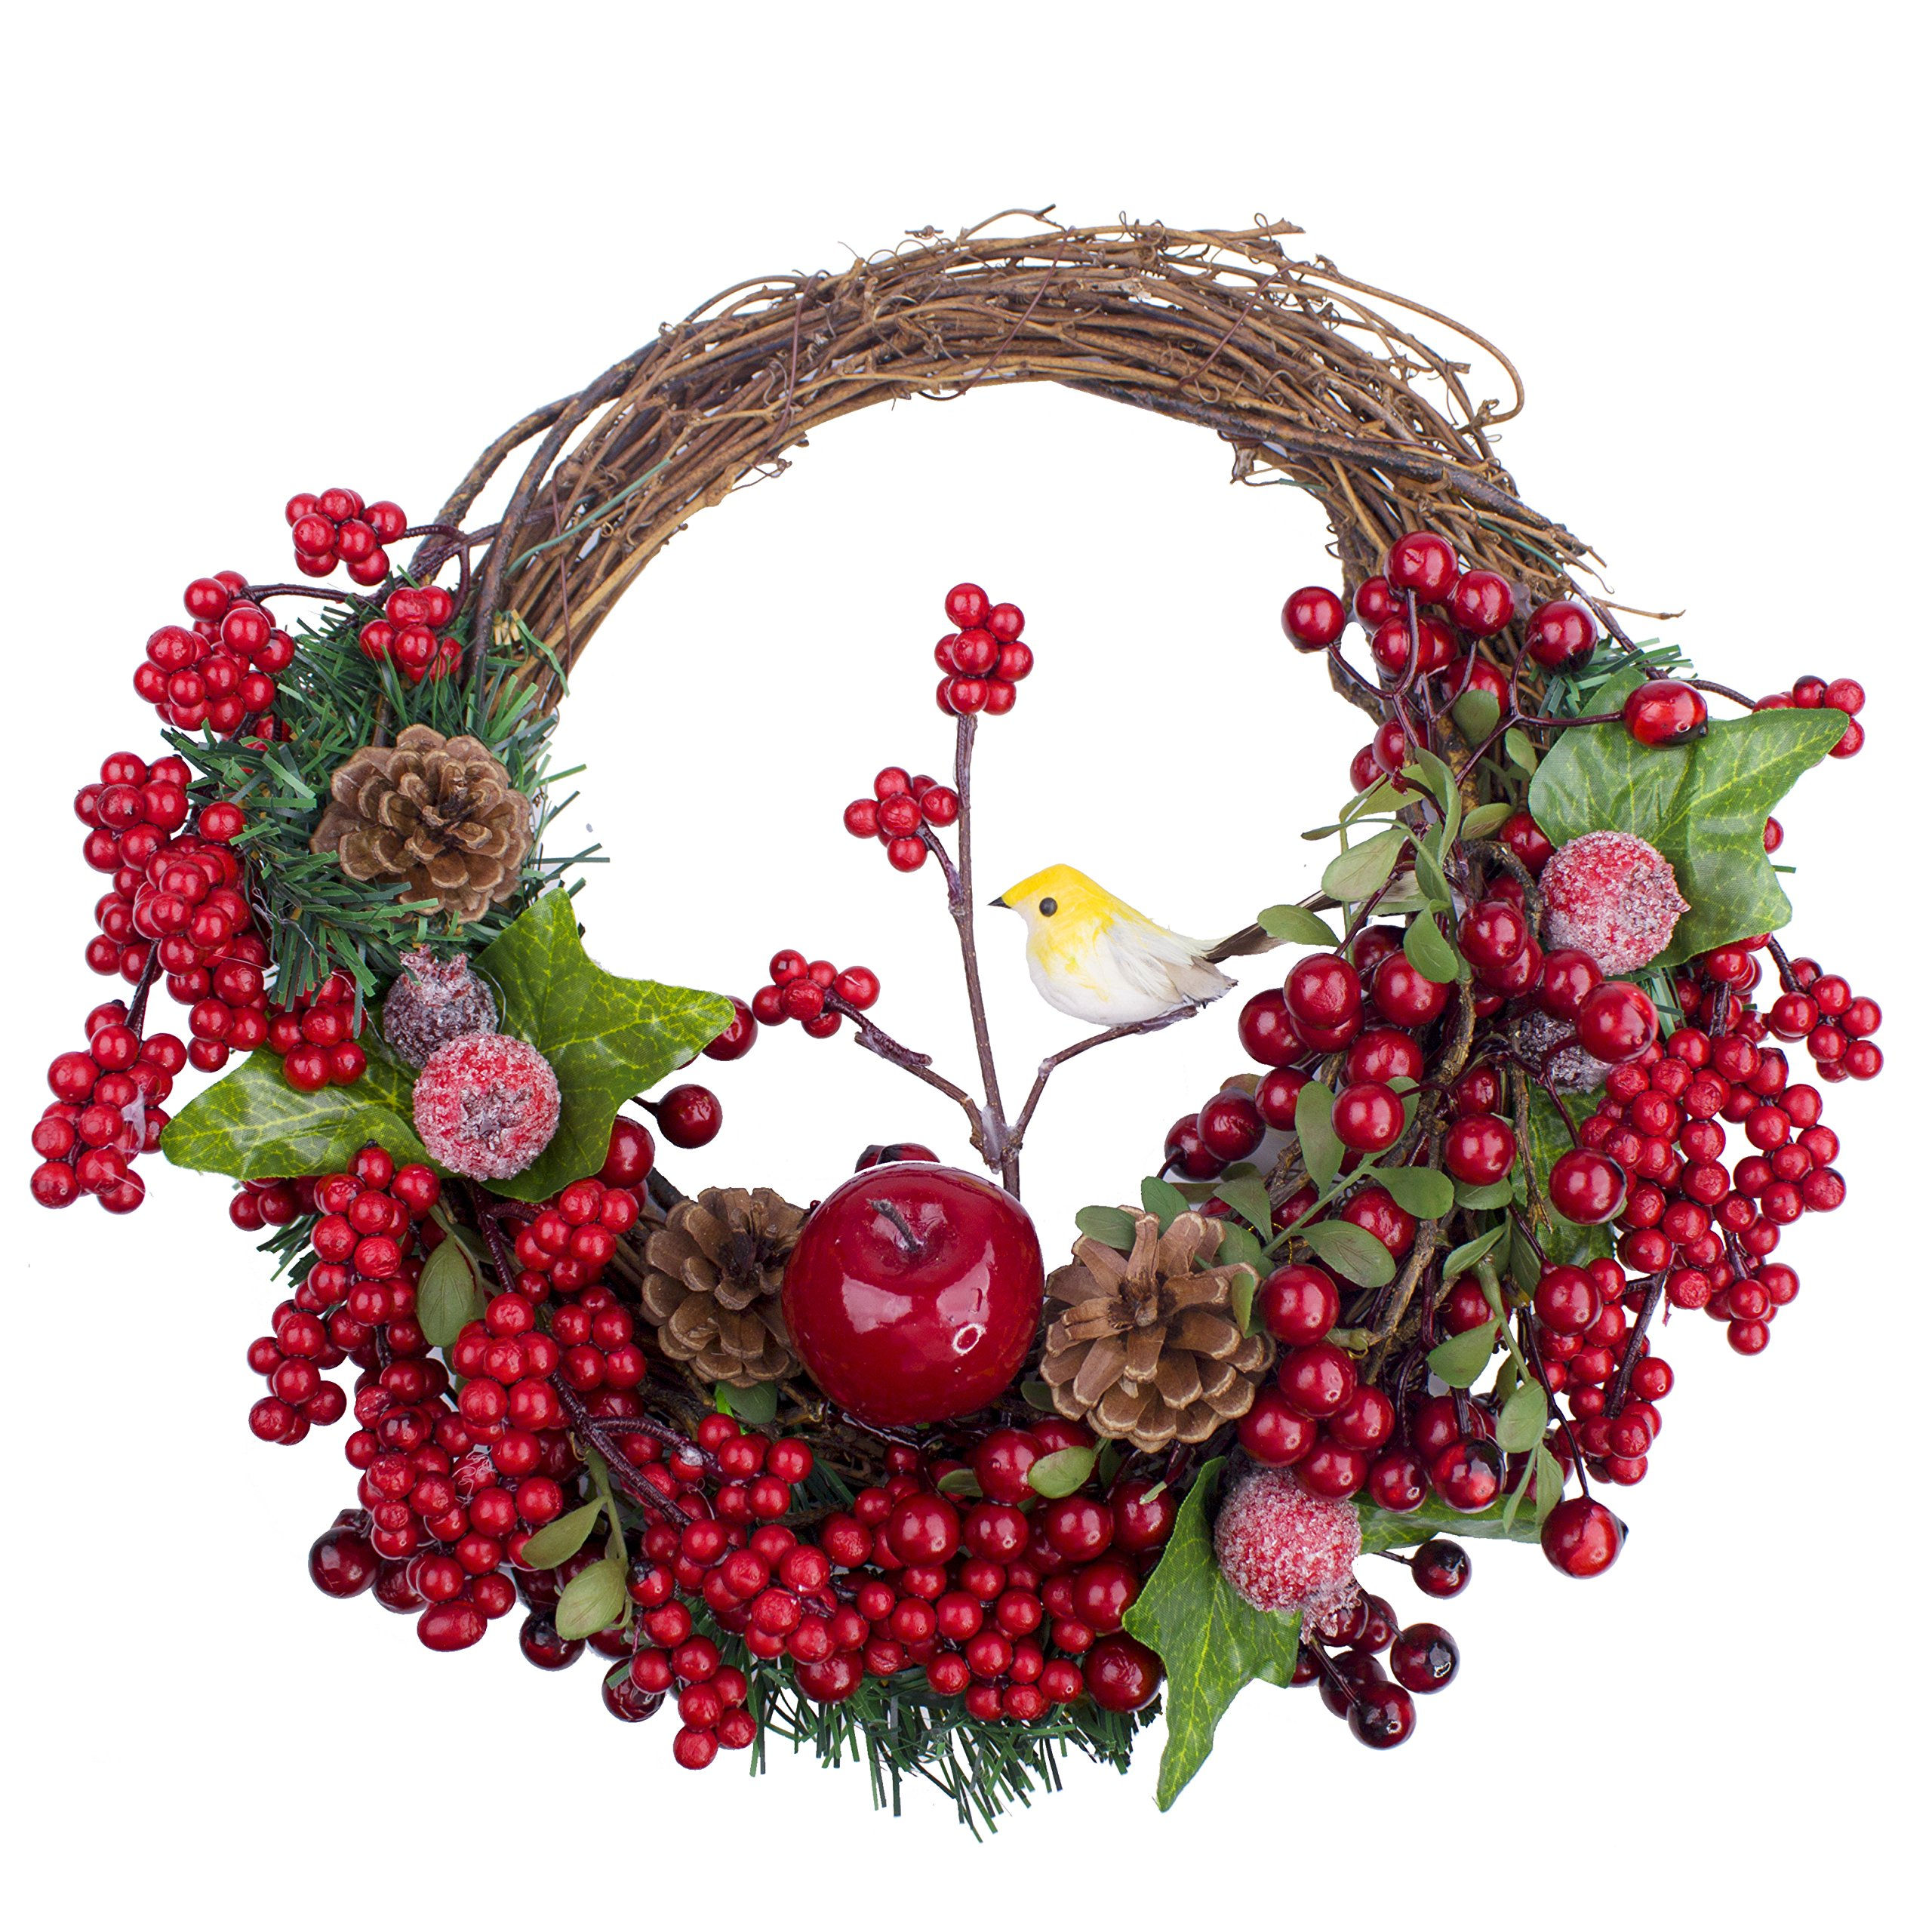 LTWHOME CWB Artificial 12.5'' x 11.5'' Christmas Wreath with Berries,Cones and Bird for Front Door,Wall, Mantelpiece,Window Decor